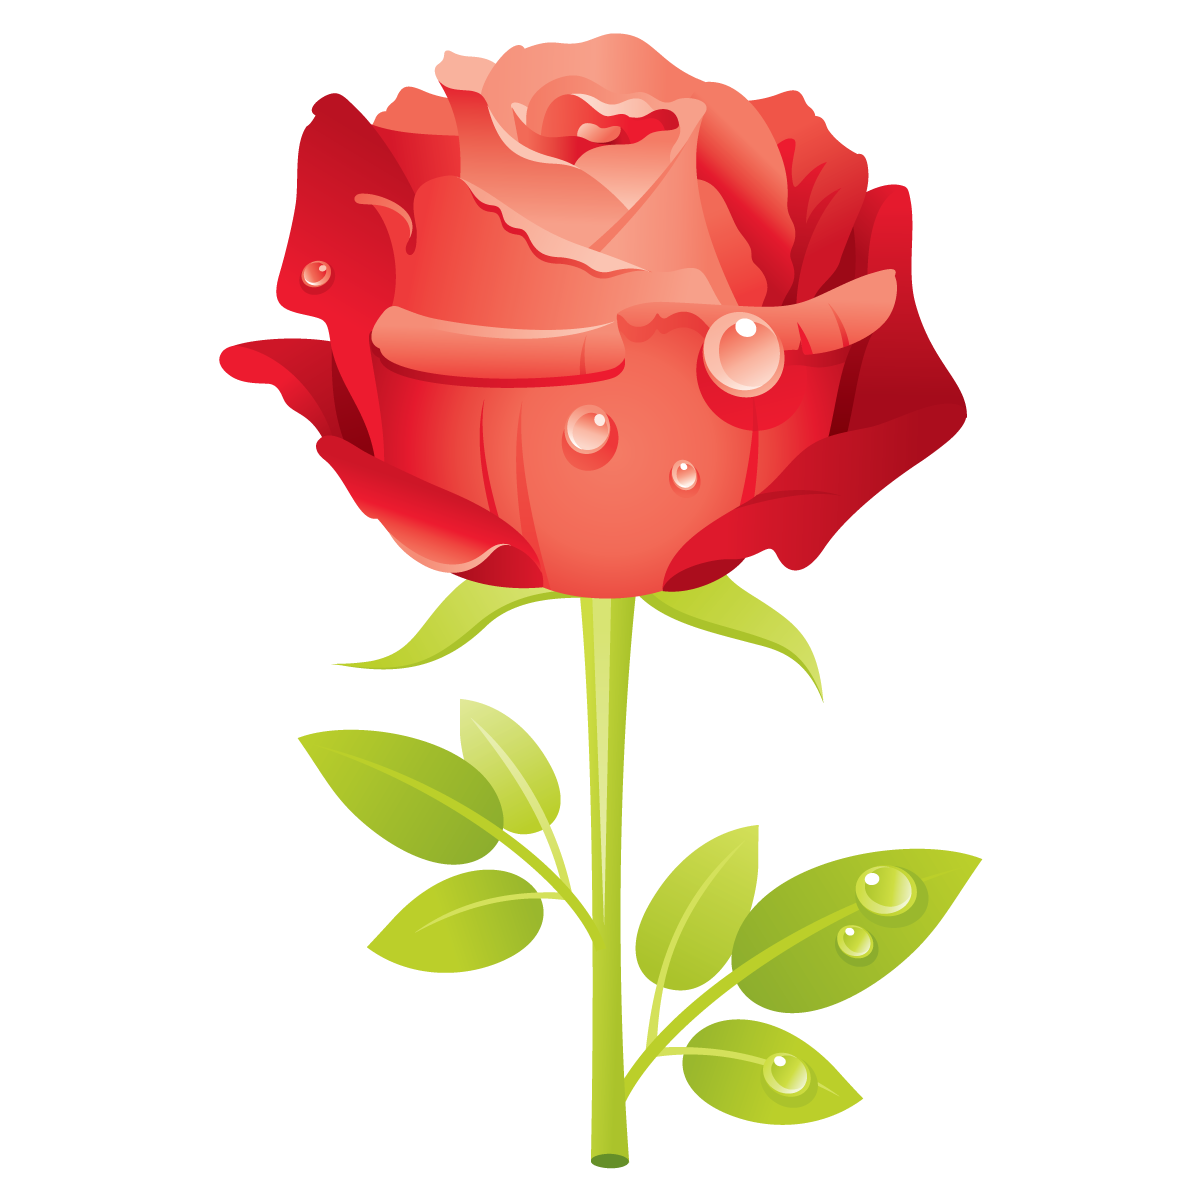 Rose clipart mothersday #8